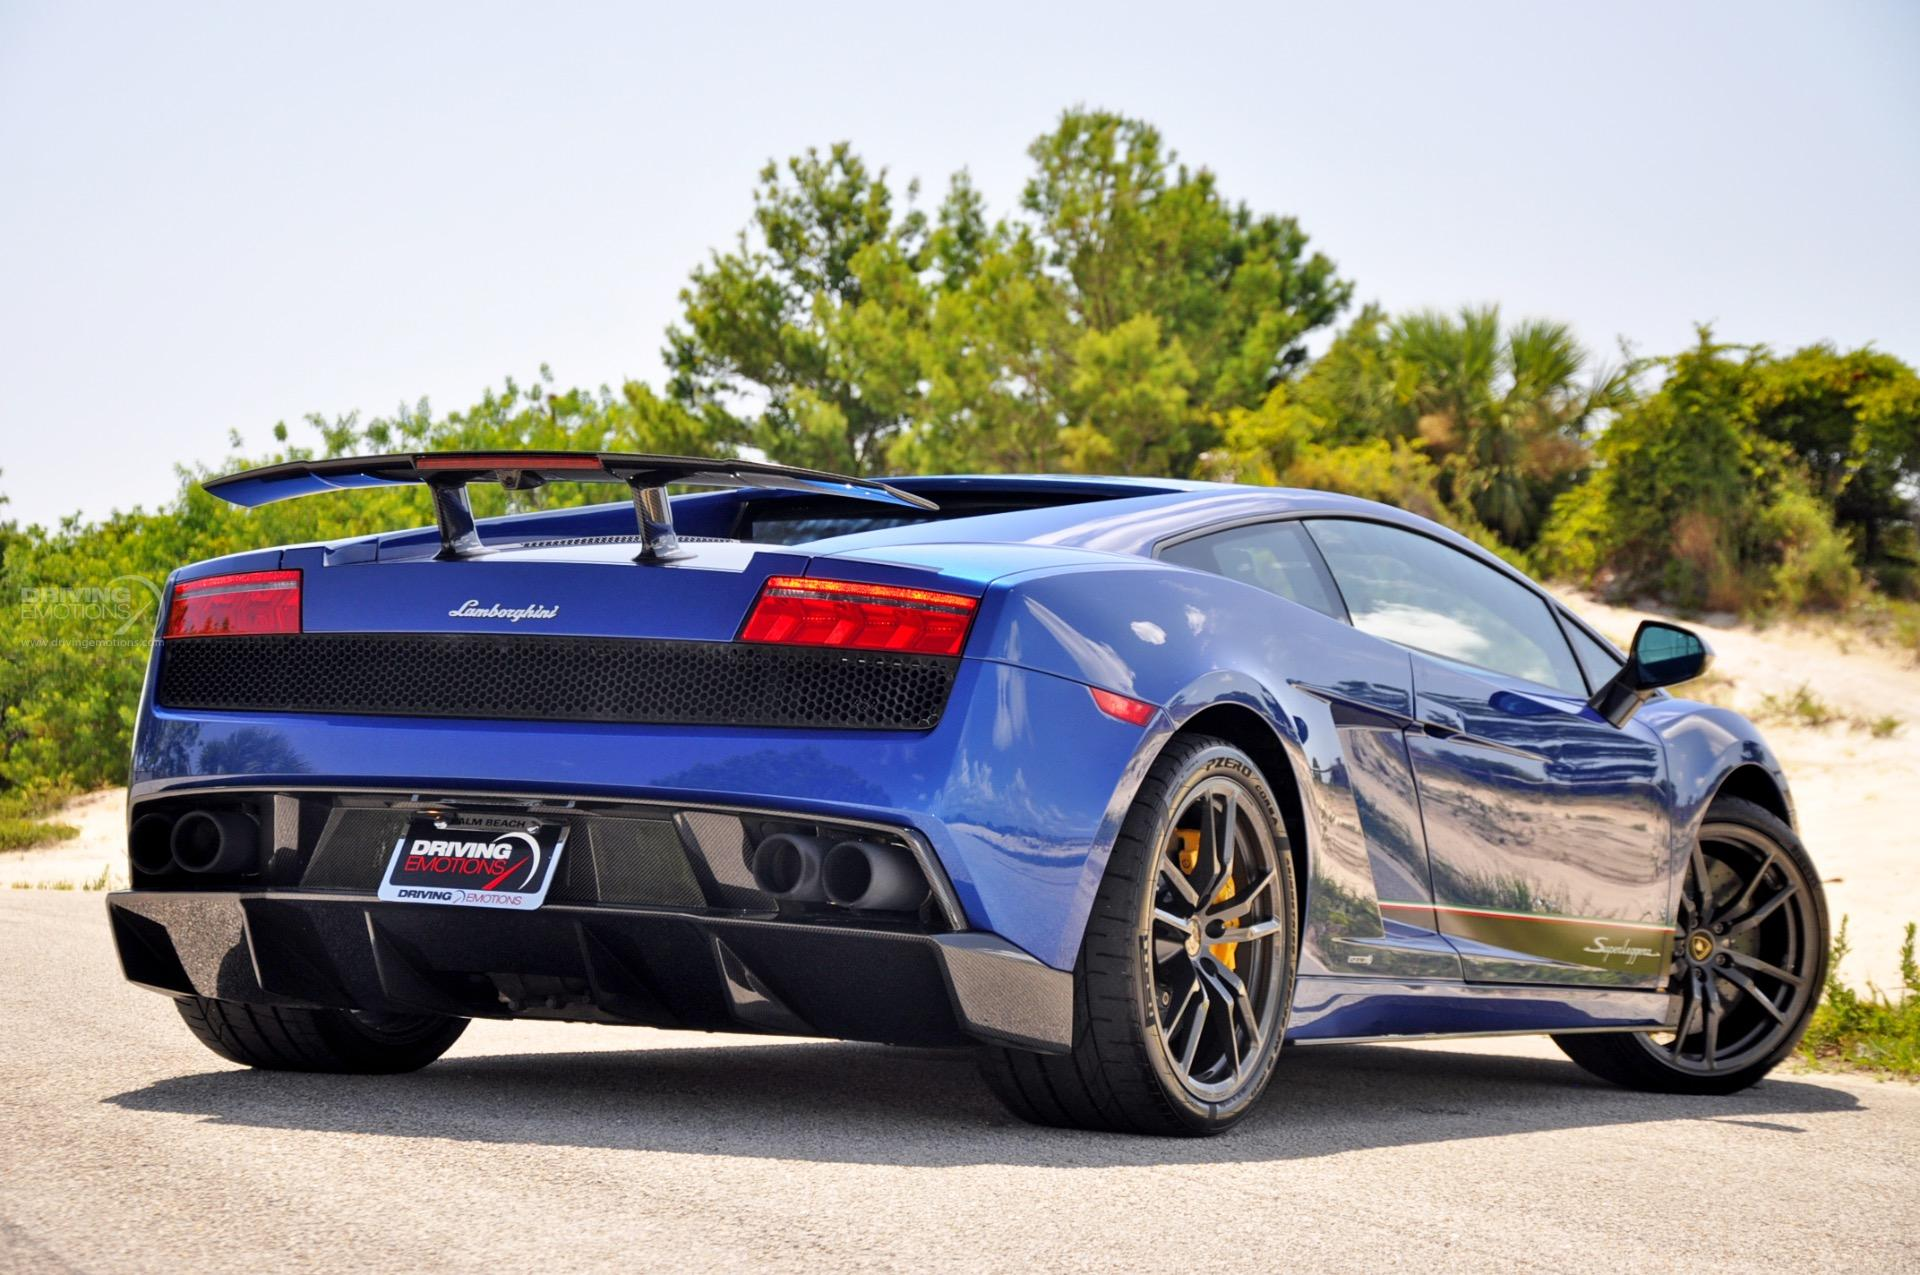 2013 Lamborghini Gallardo Lp570 4 Superleggera Lp 570 4 Superleggera Stock 5895 For Sale Near